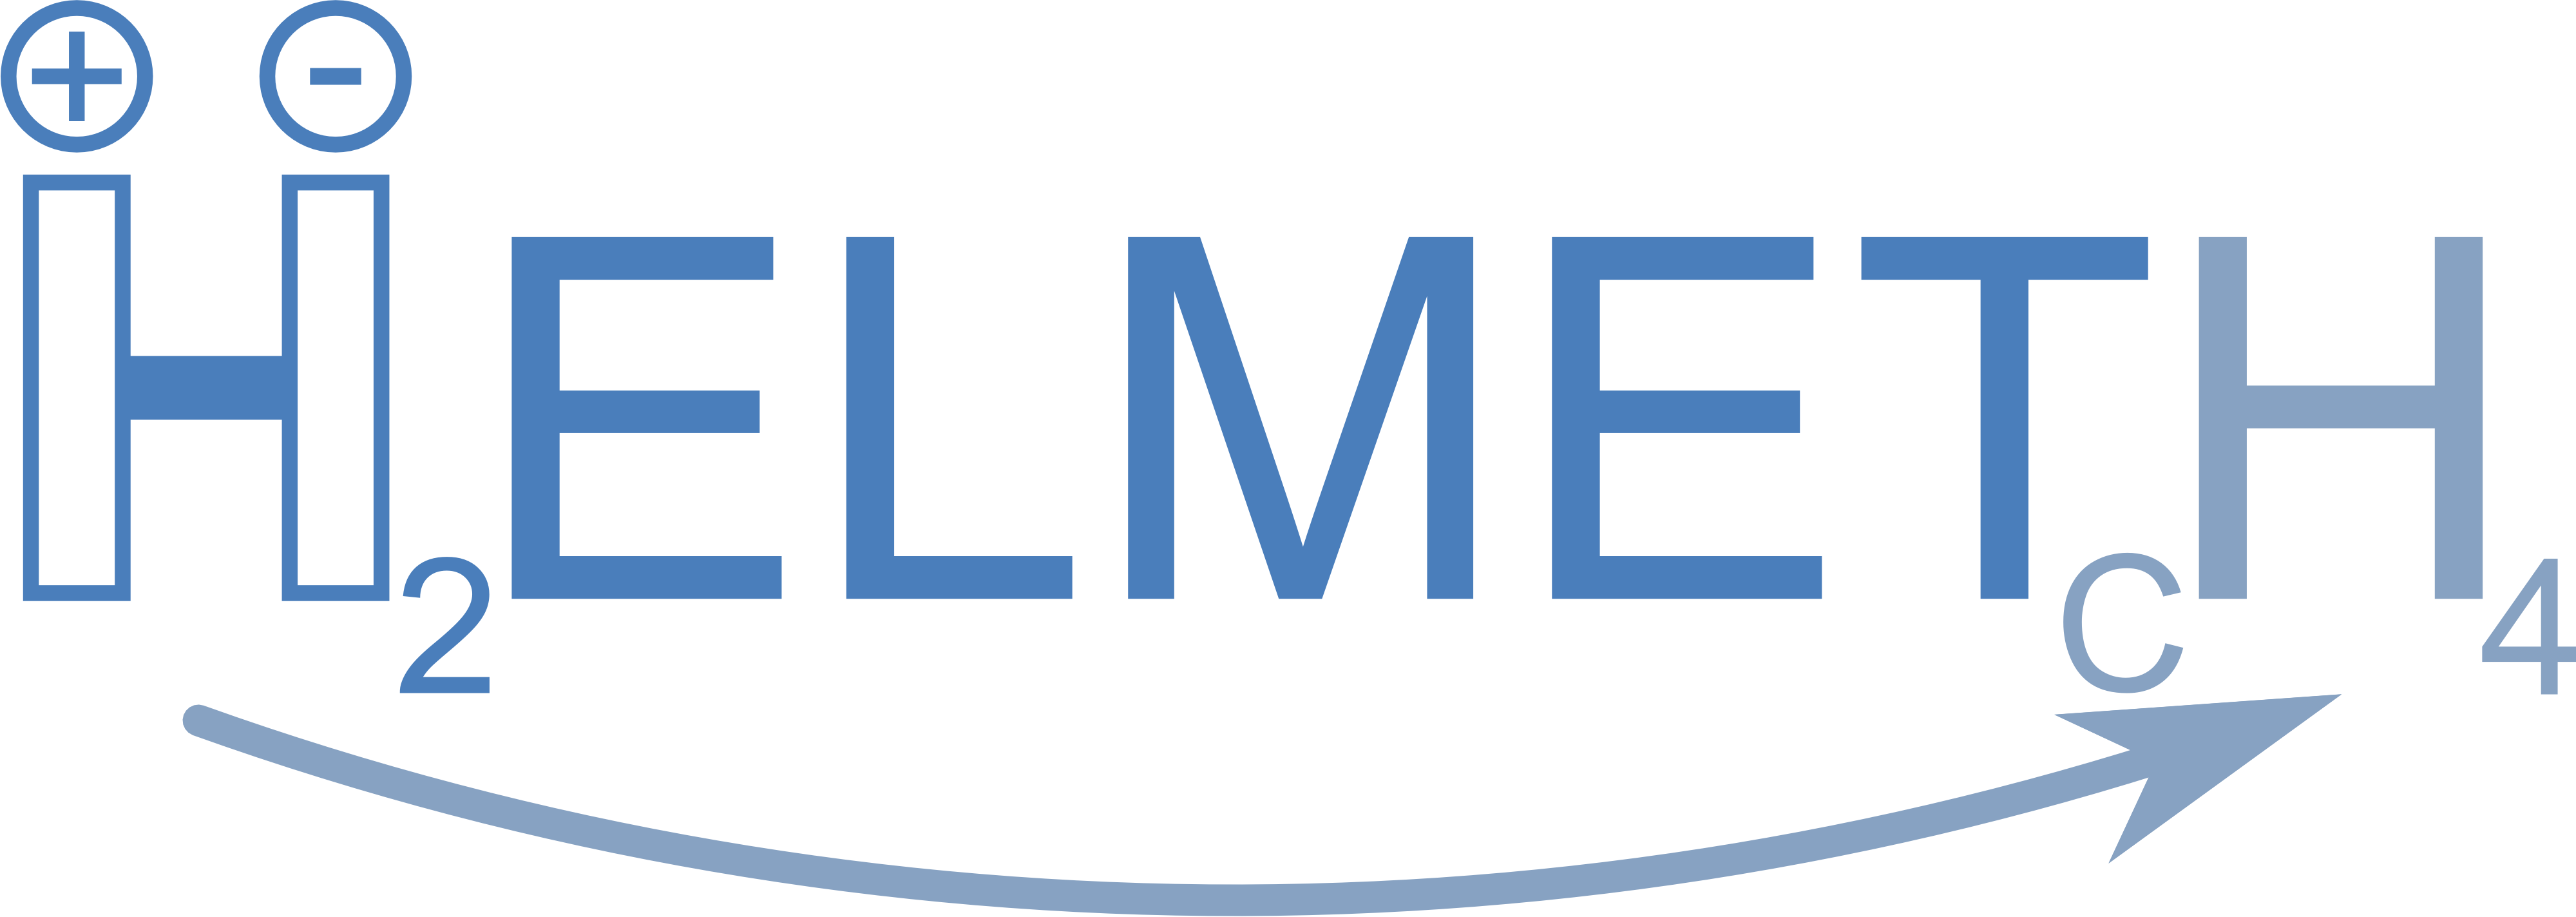 HELMETH Logo